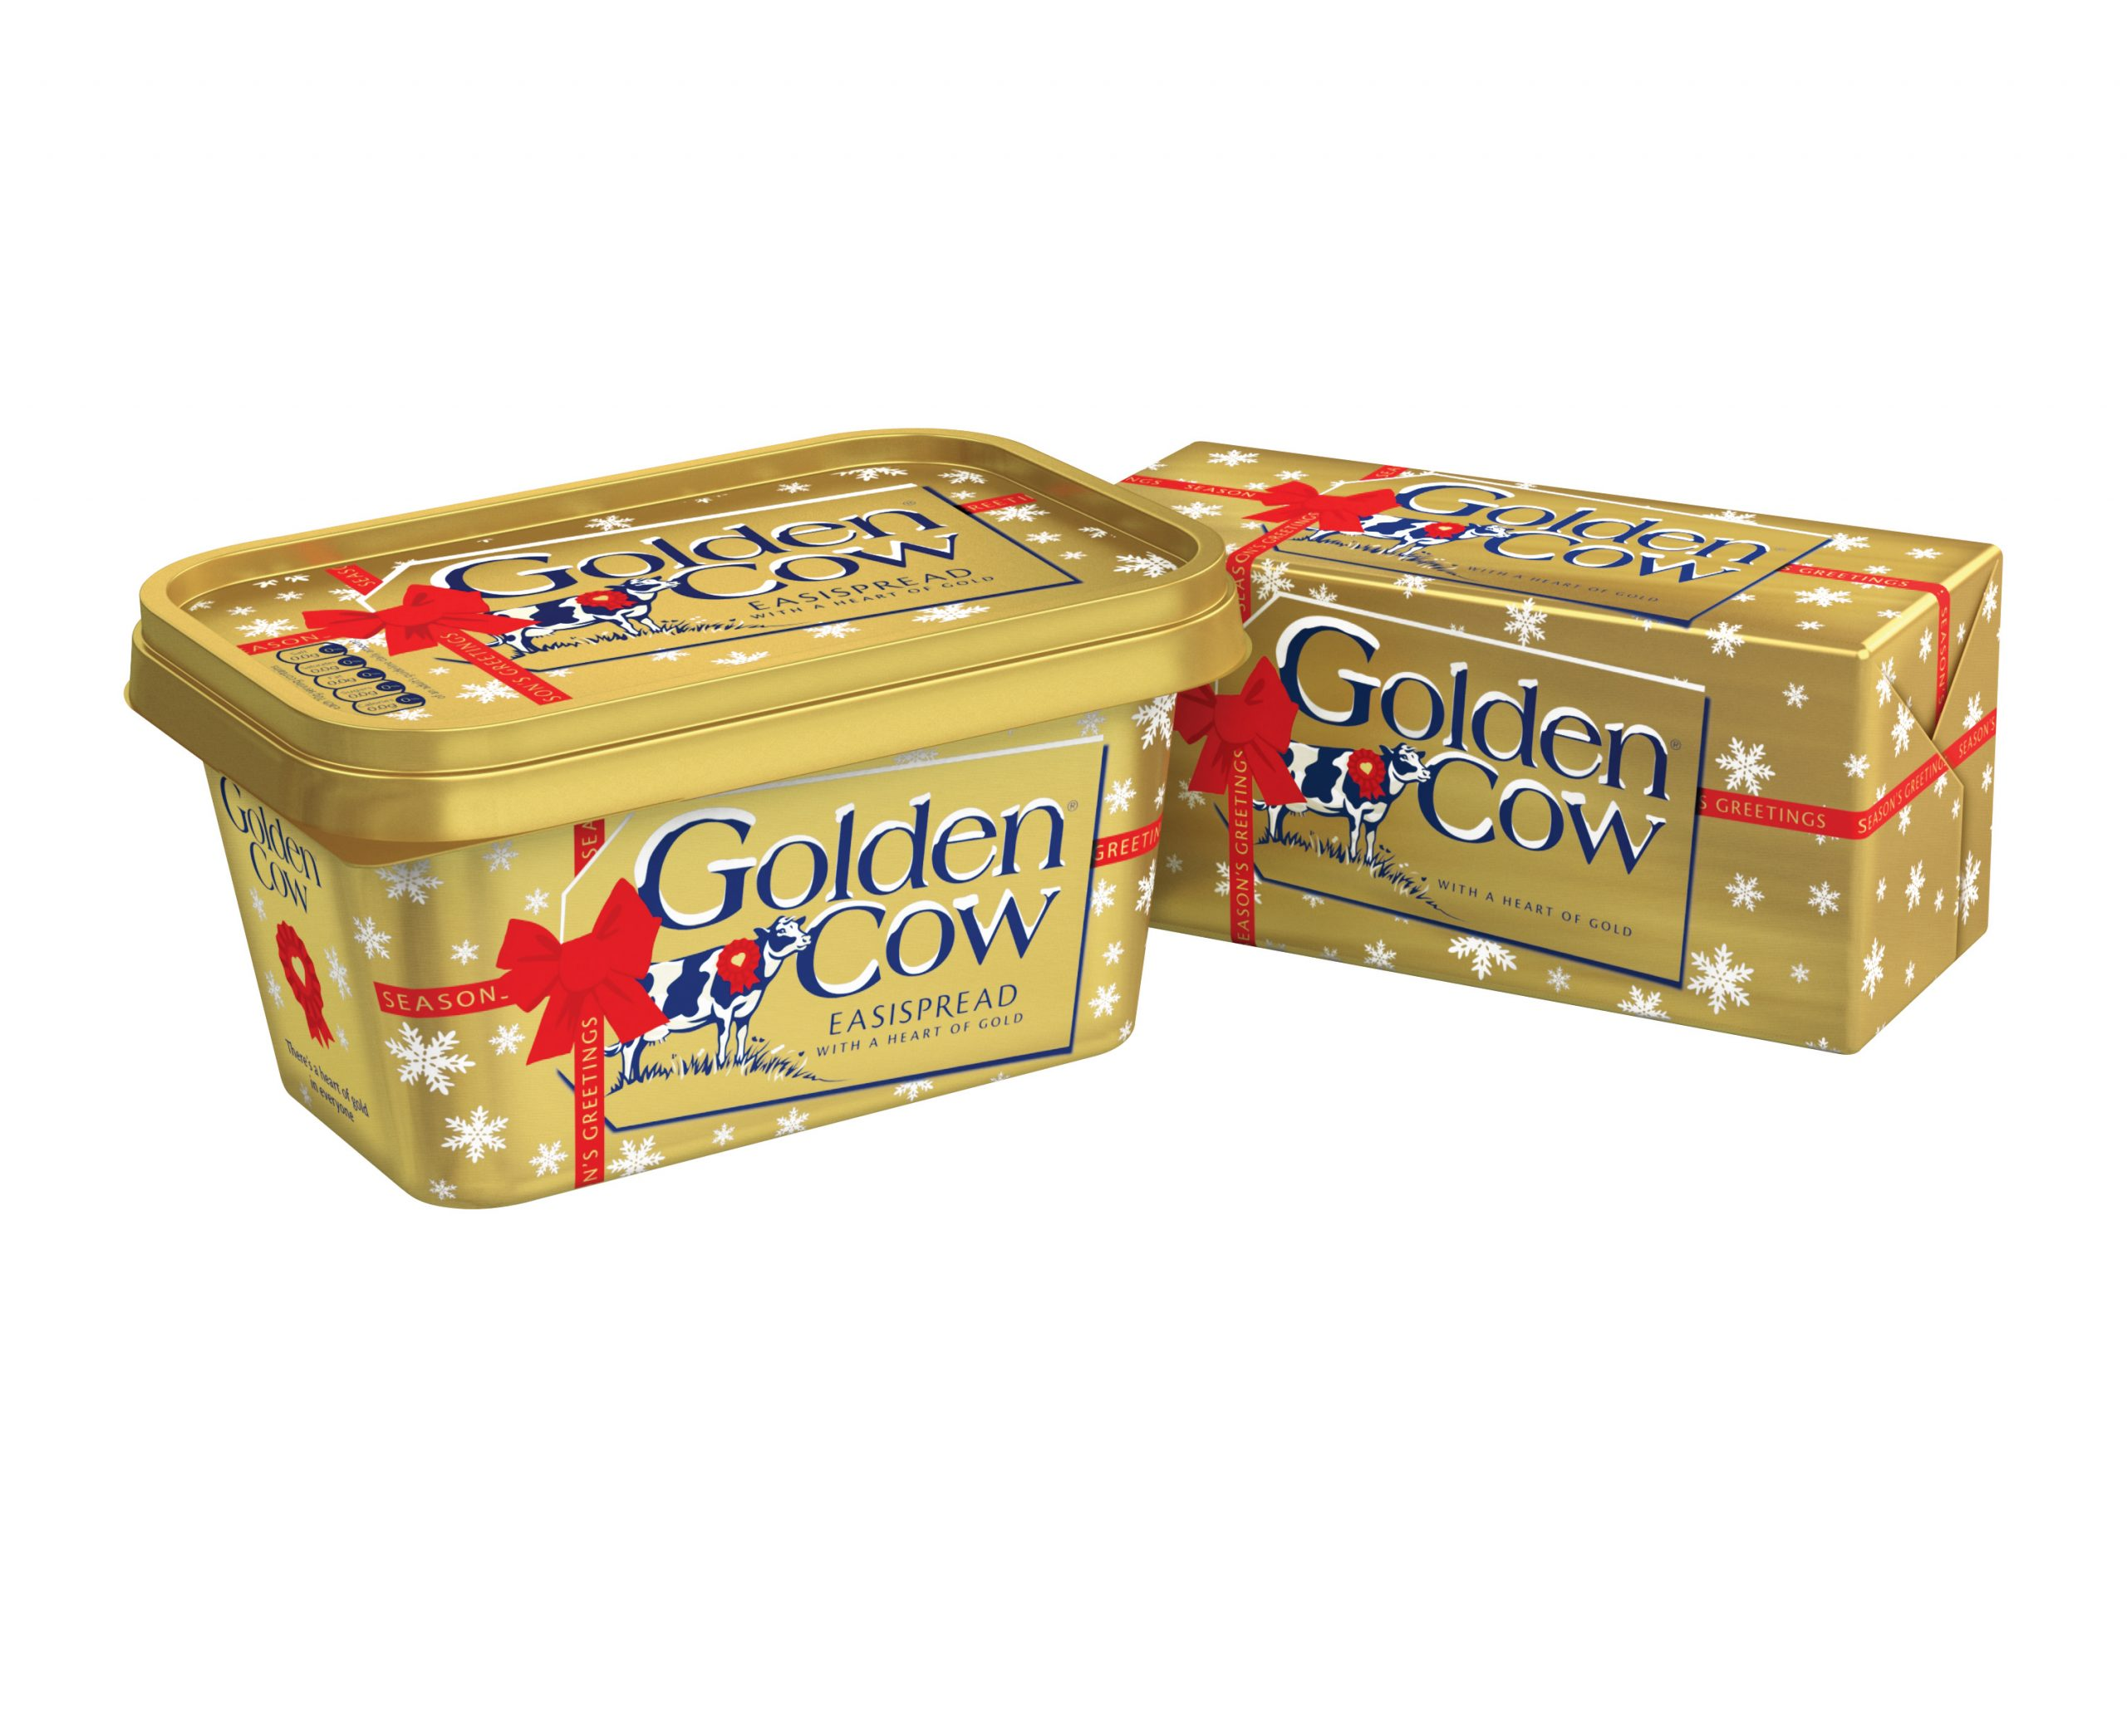 Golden Cow – A Traditional of Taste this Christmas